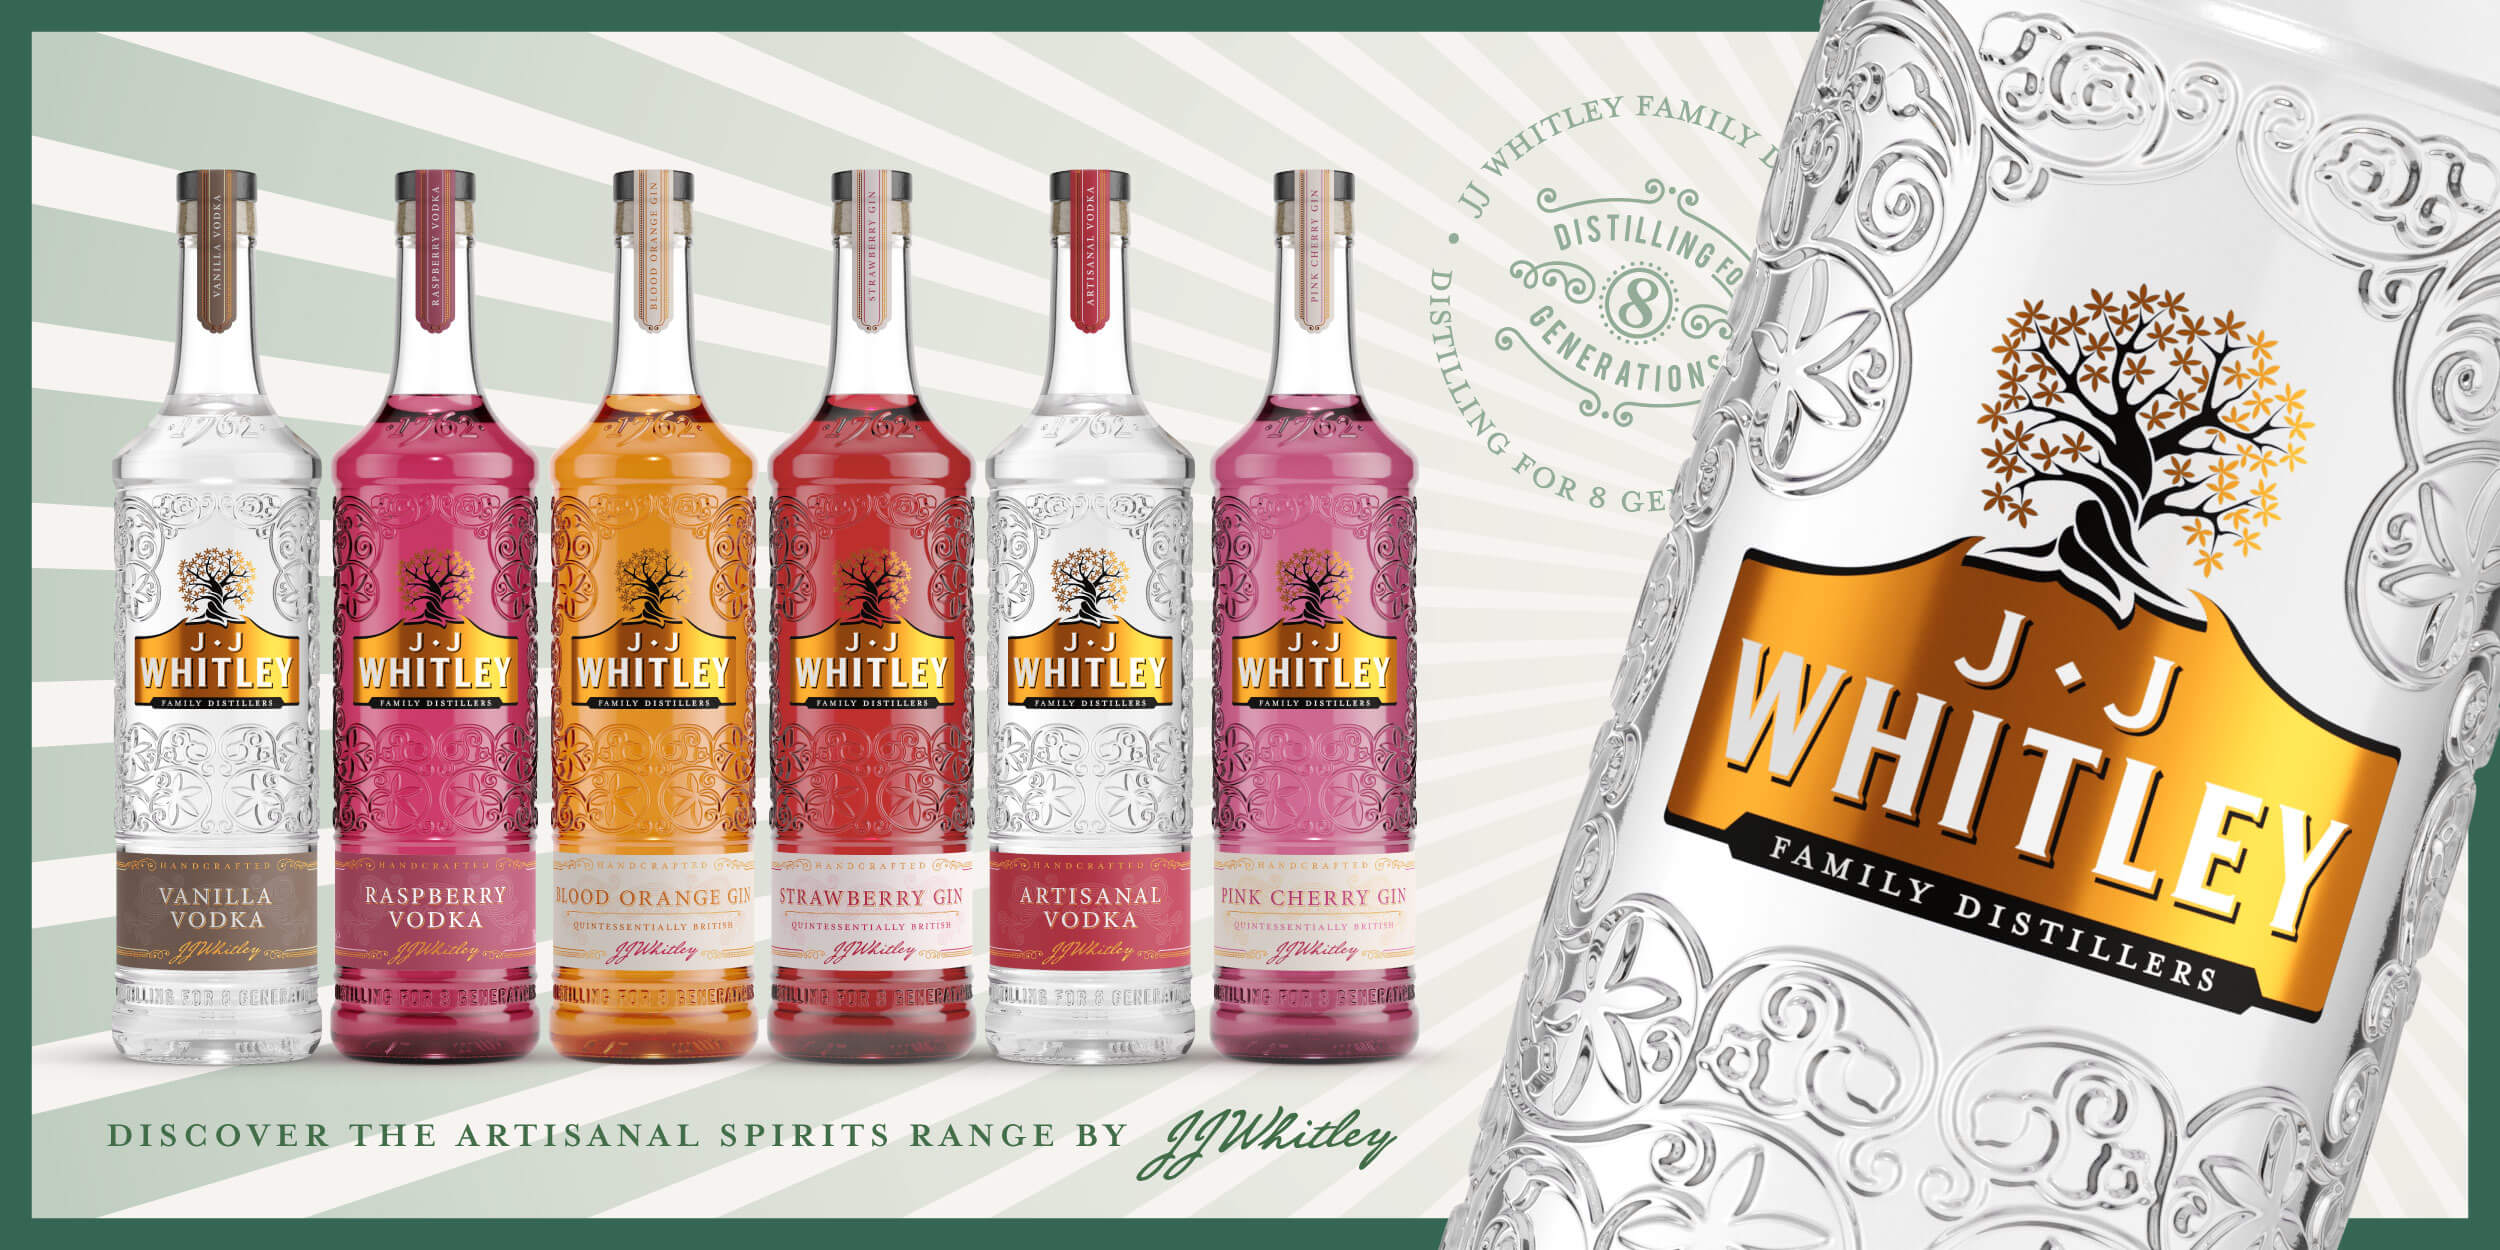 JJ Whitley range of gins and vodkas